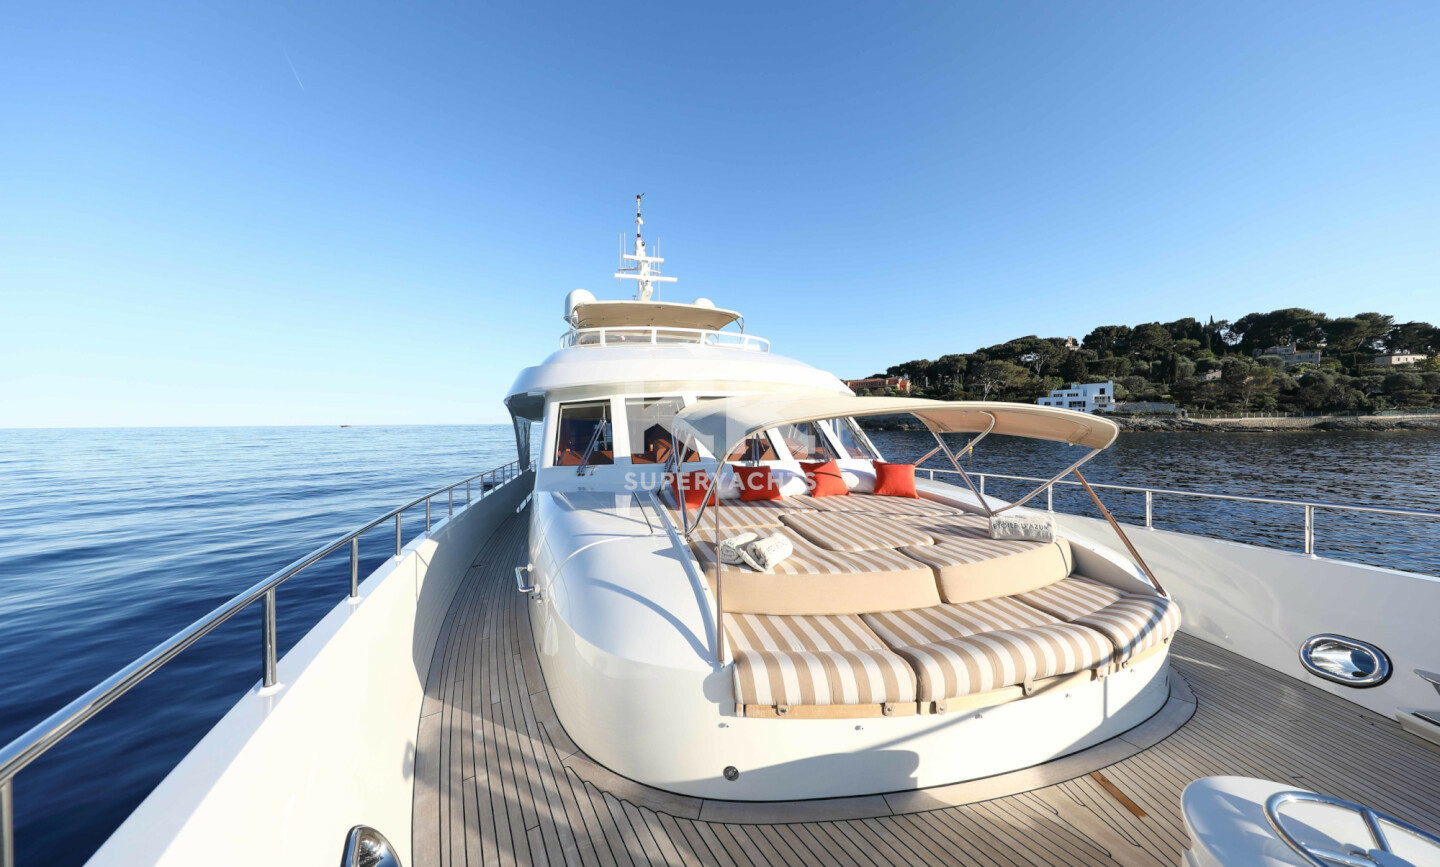 Etoile D'azur yacht for Charter 4